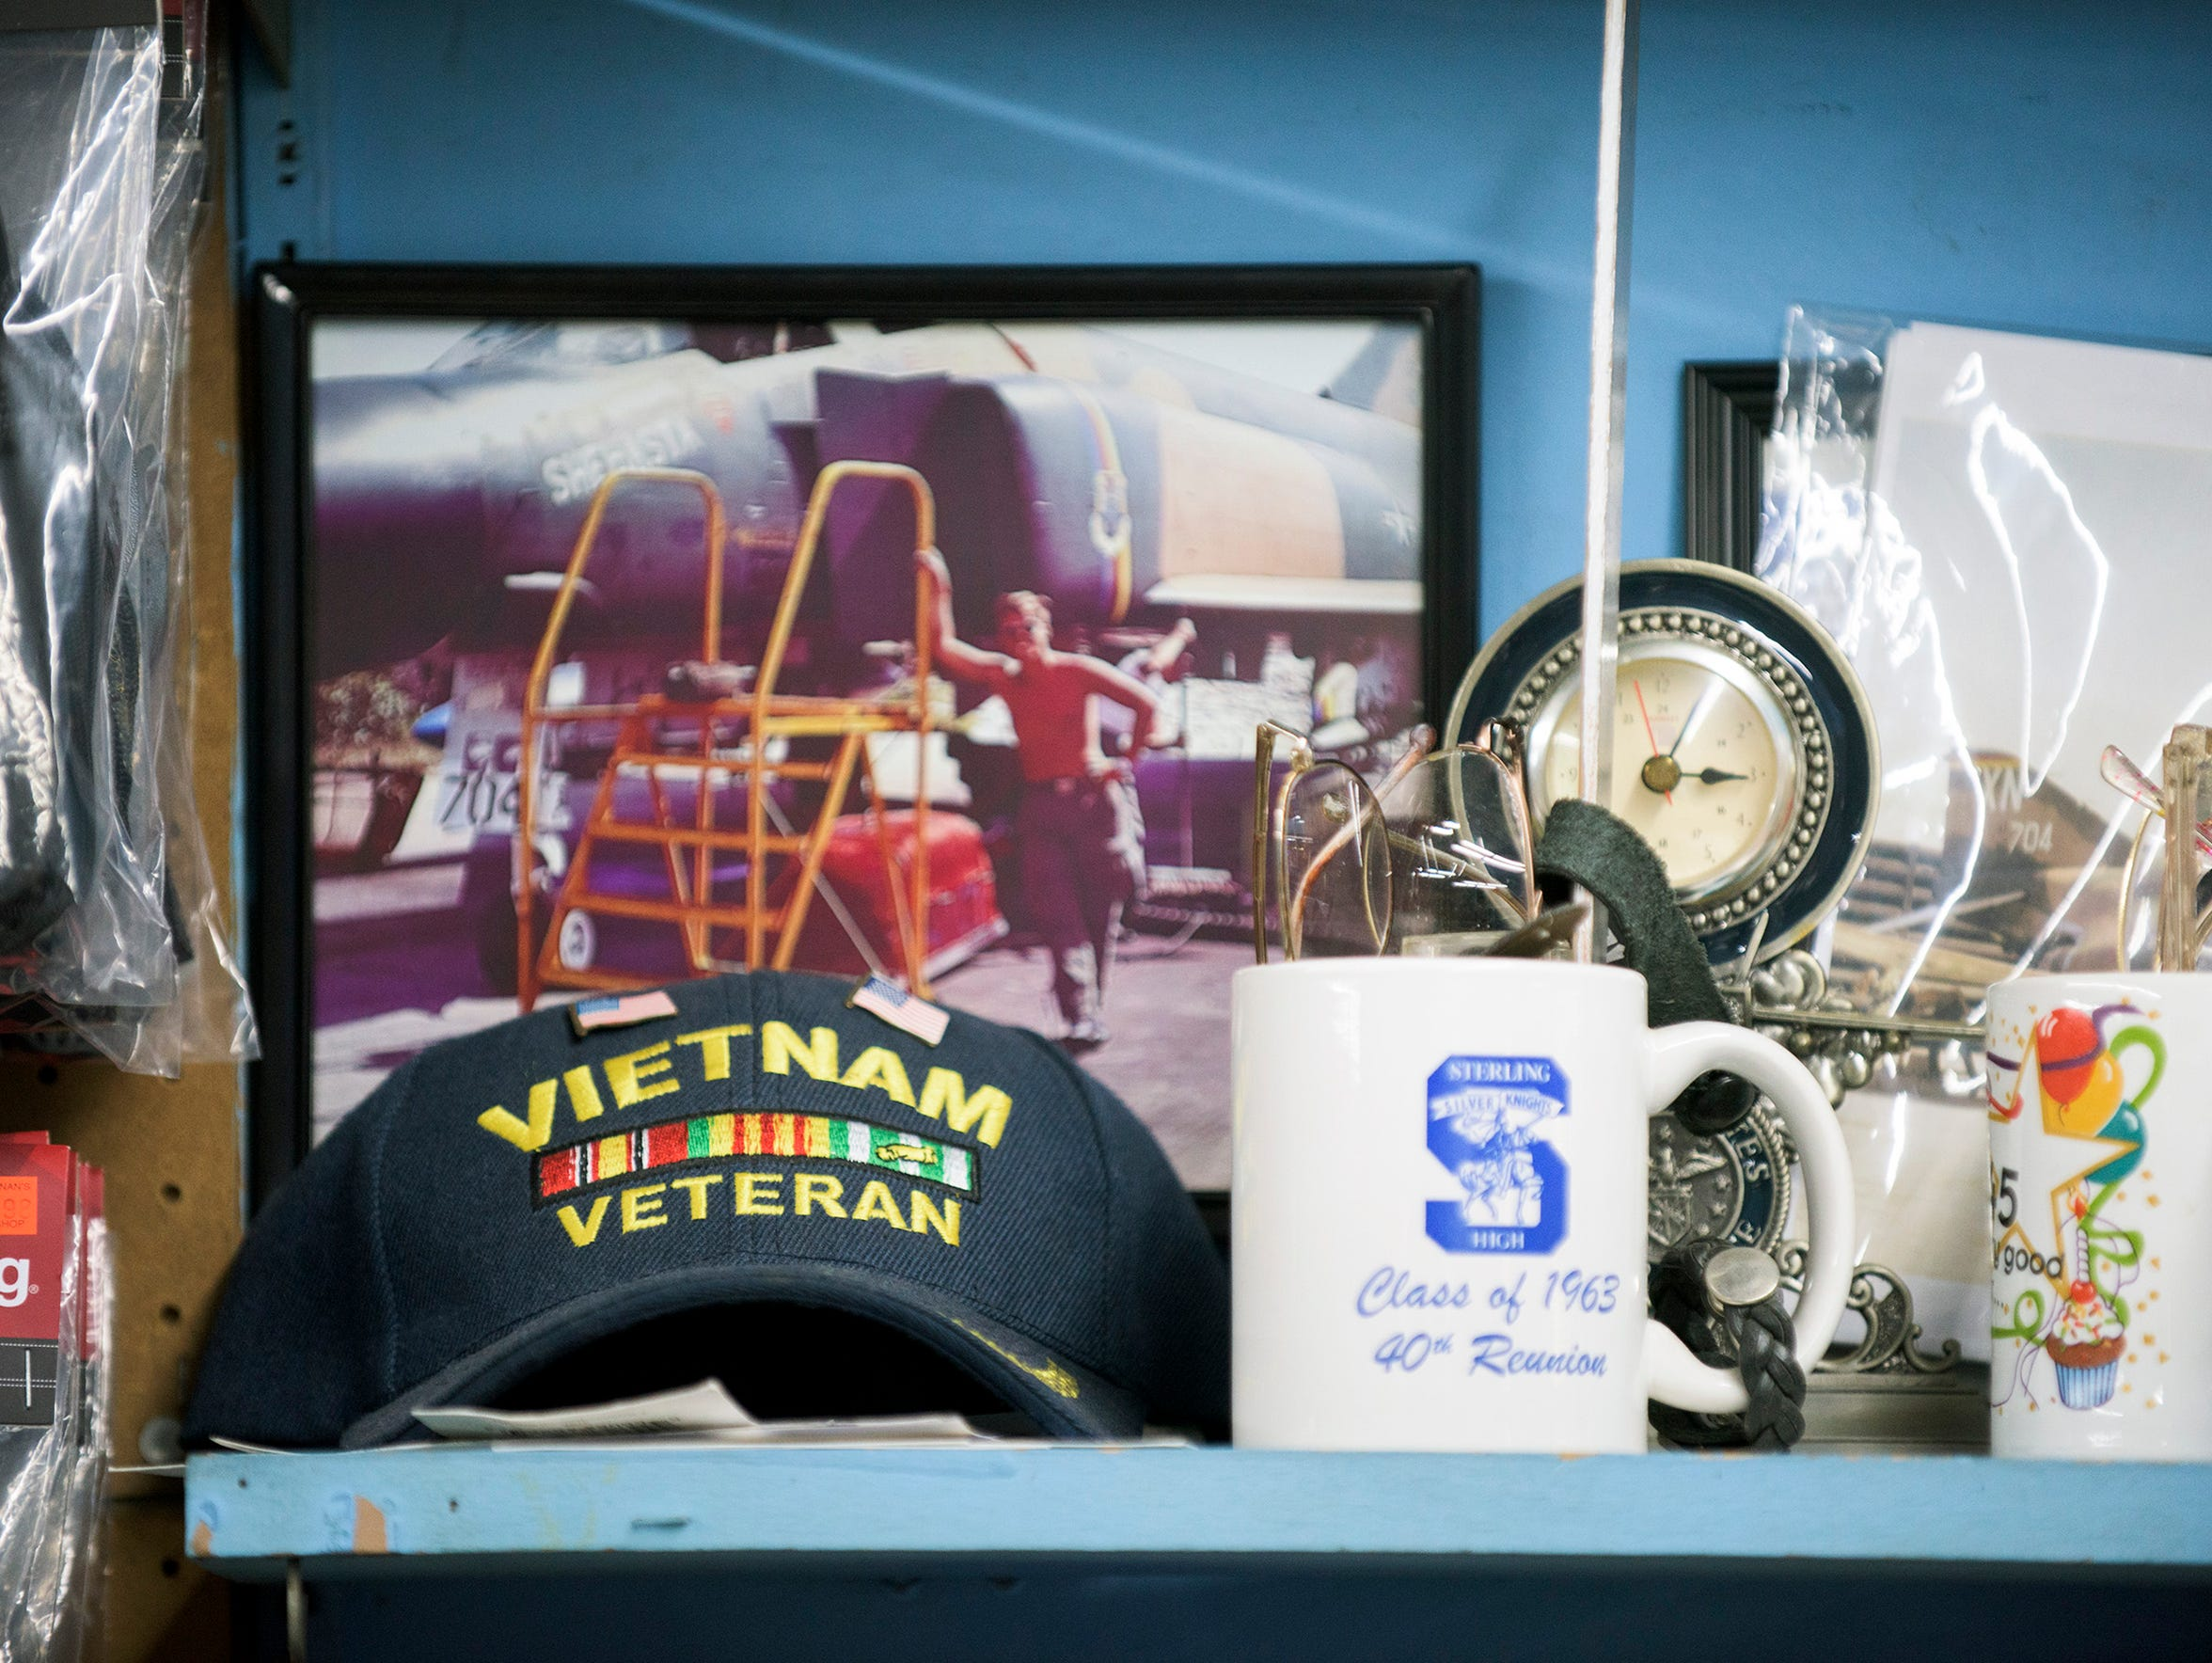 Joe DiPietro's Vietnam Veteran cap lays on a shelf inside his shop at the Berlin Farmers Market.